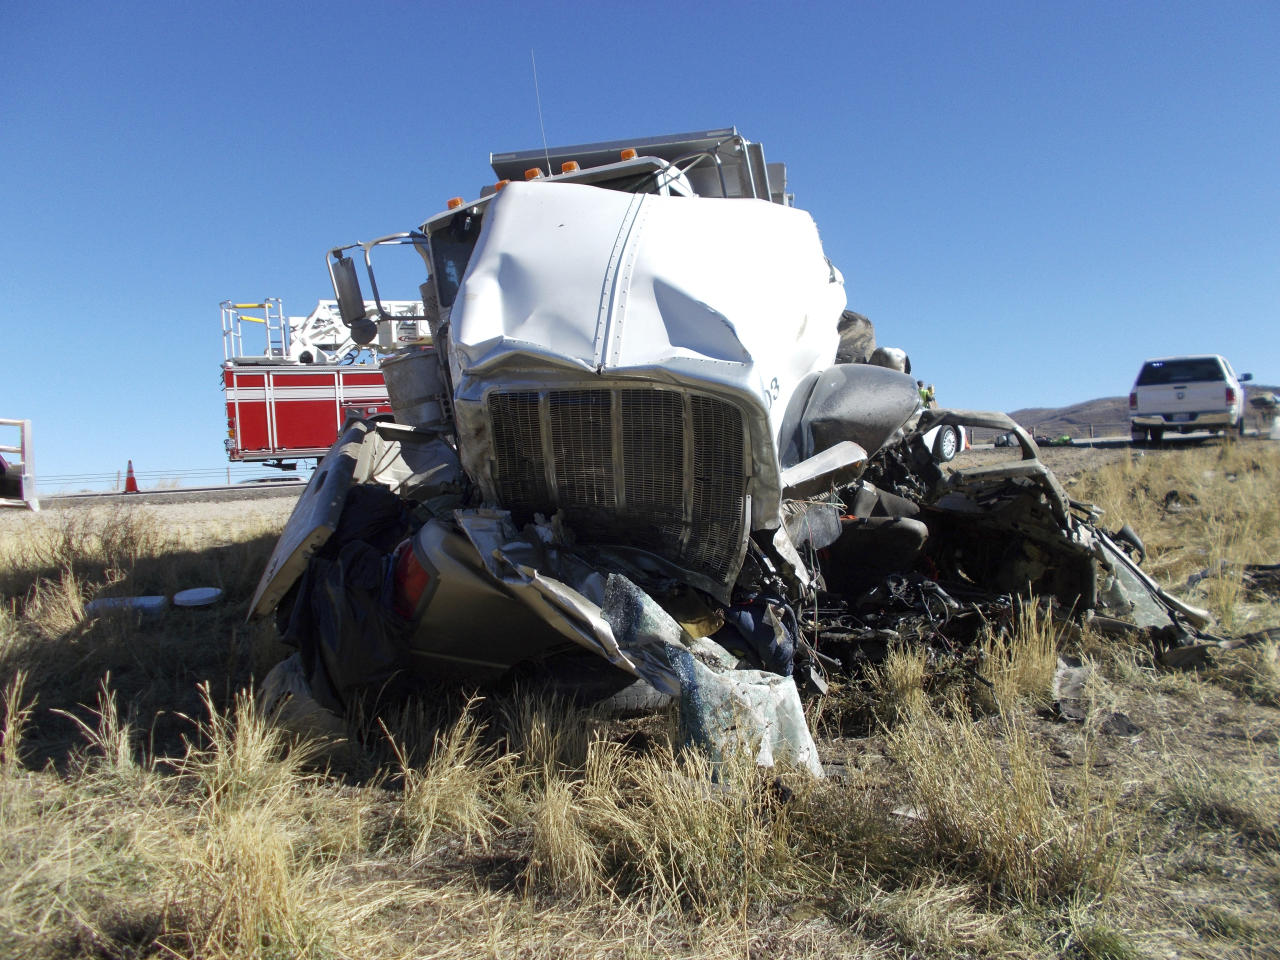 This Friday, Oct. 19, 2018 photo provided by the Utah Highway Patrol shows the scene of a head-on collision of a dump truck and a pickup on a state highway near Heber, Utah. State troopers say the dump truck crossed a highway median and collided with the pickup truck traveling in the opposite direction, killing all six men in the pickup in an accident authorities suspect may was caused by alcohol and prescription drugs. The Utah Highway Patrol said Saturday its officers found prescription pills and open containers of alcohol inside the dump truck. (Utah Highway Patrol via AP)